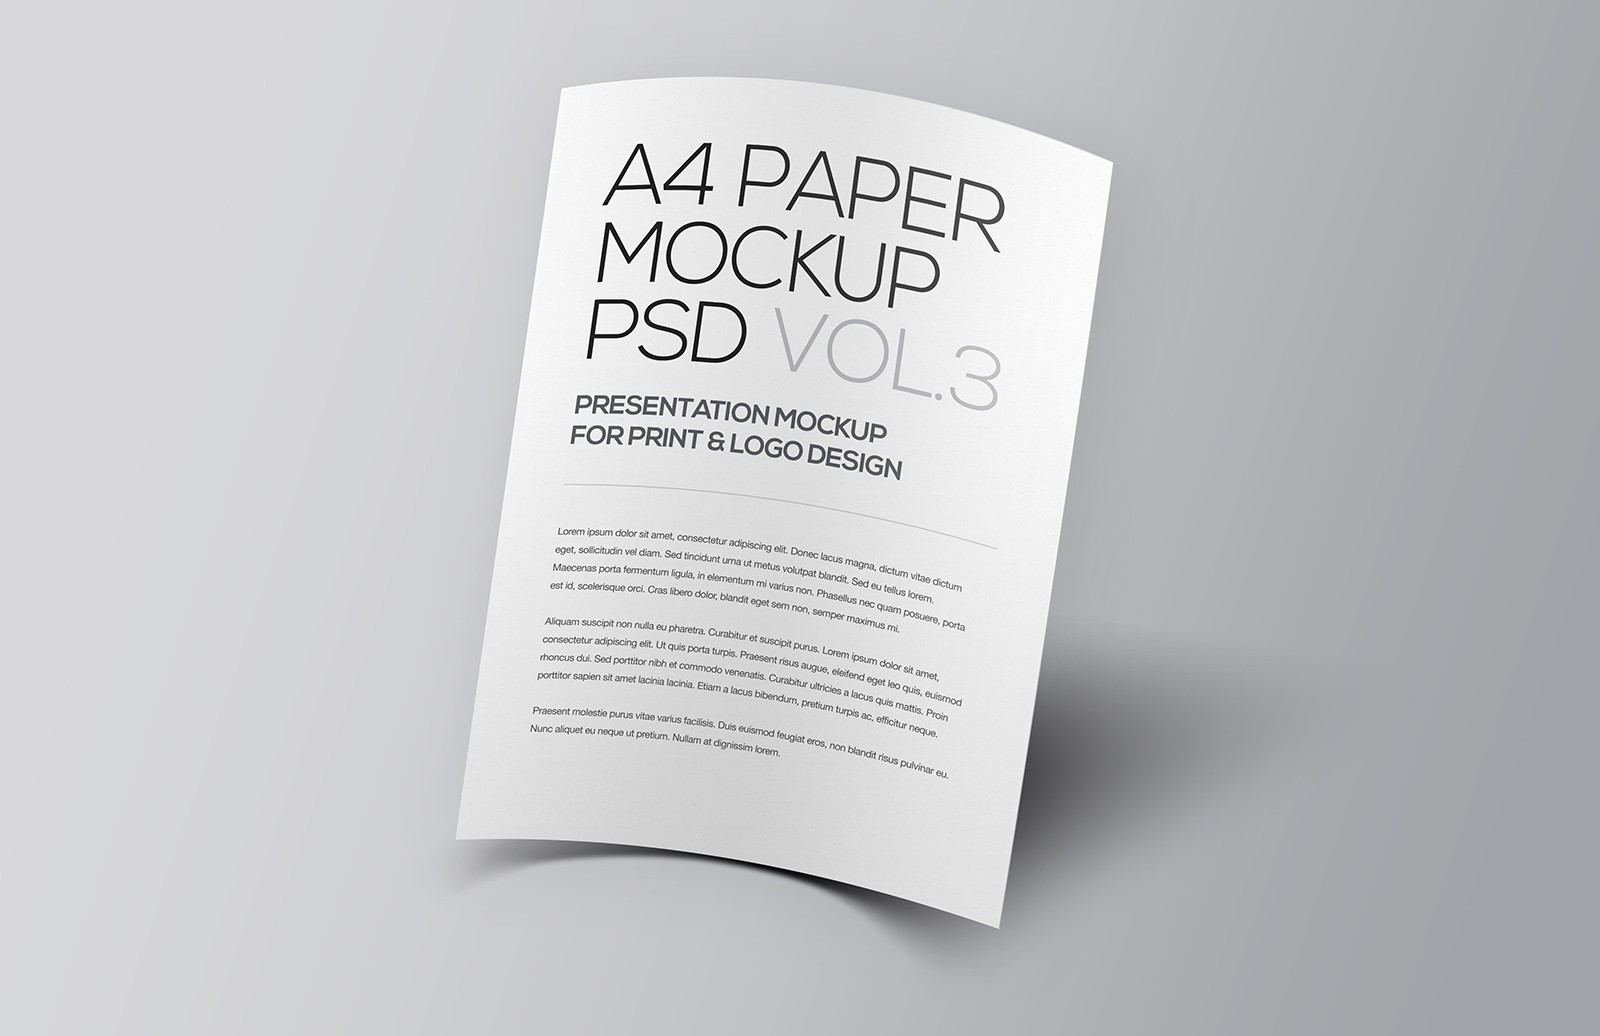 Floating A4 Paper Mockup Vol 3